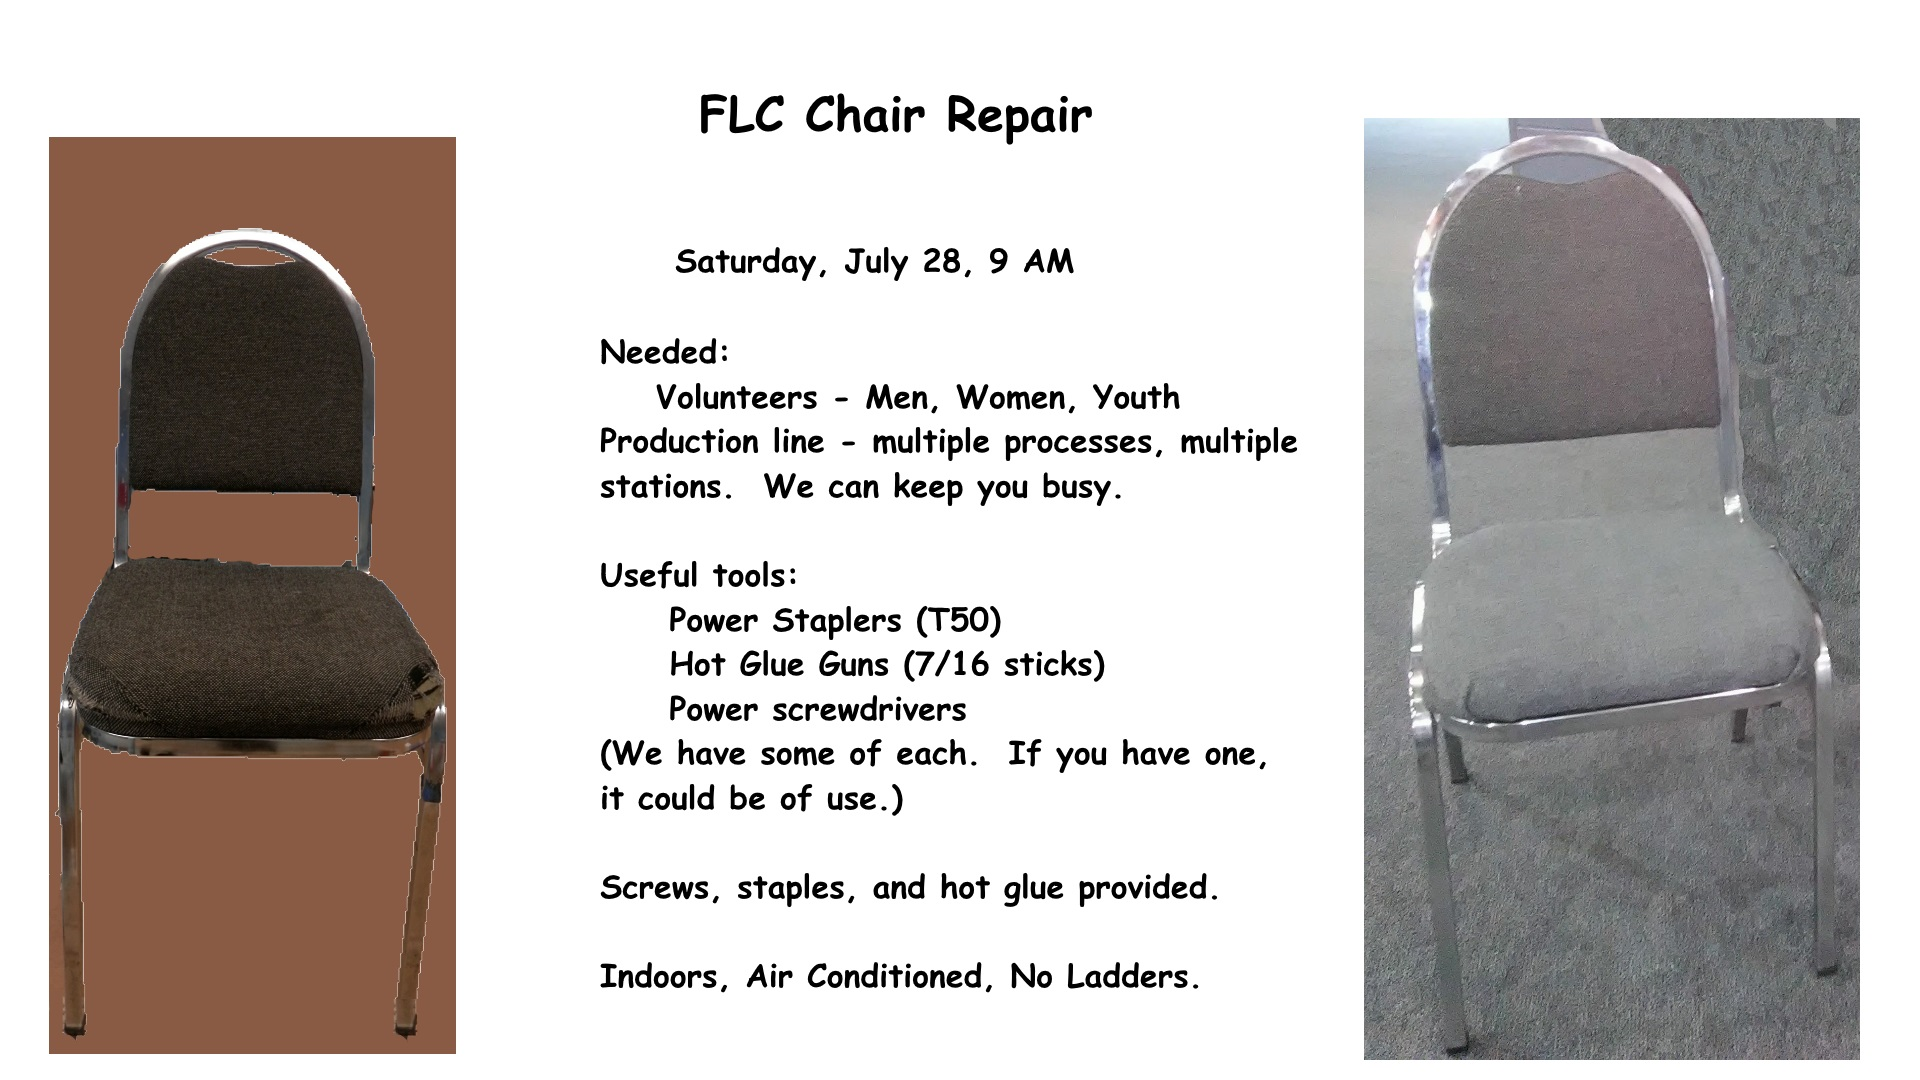 Chair Repair Flc Chair Repair Workday Effortchurch Org